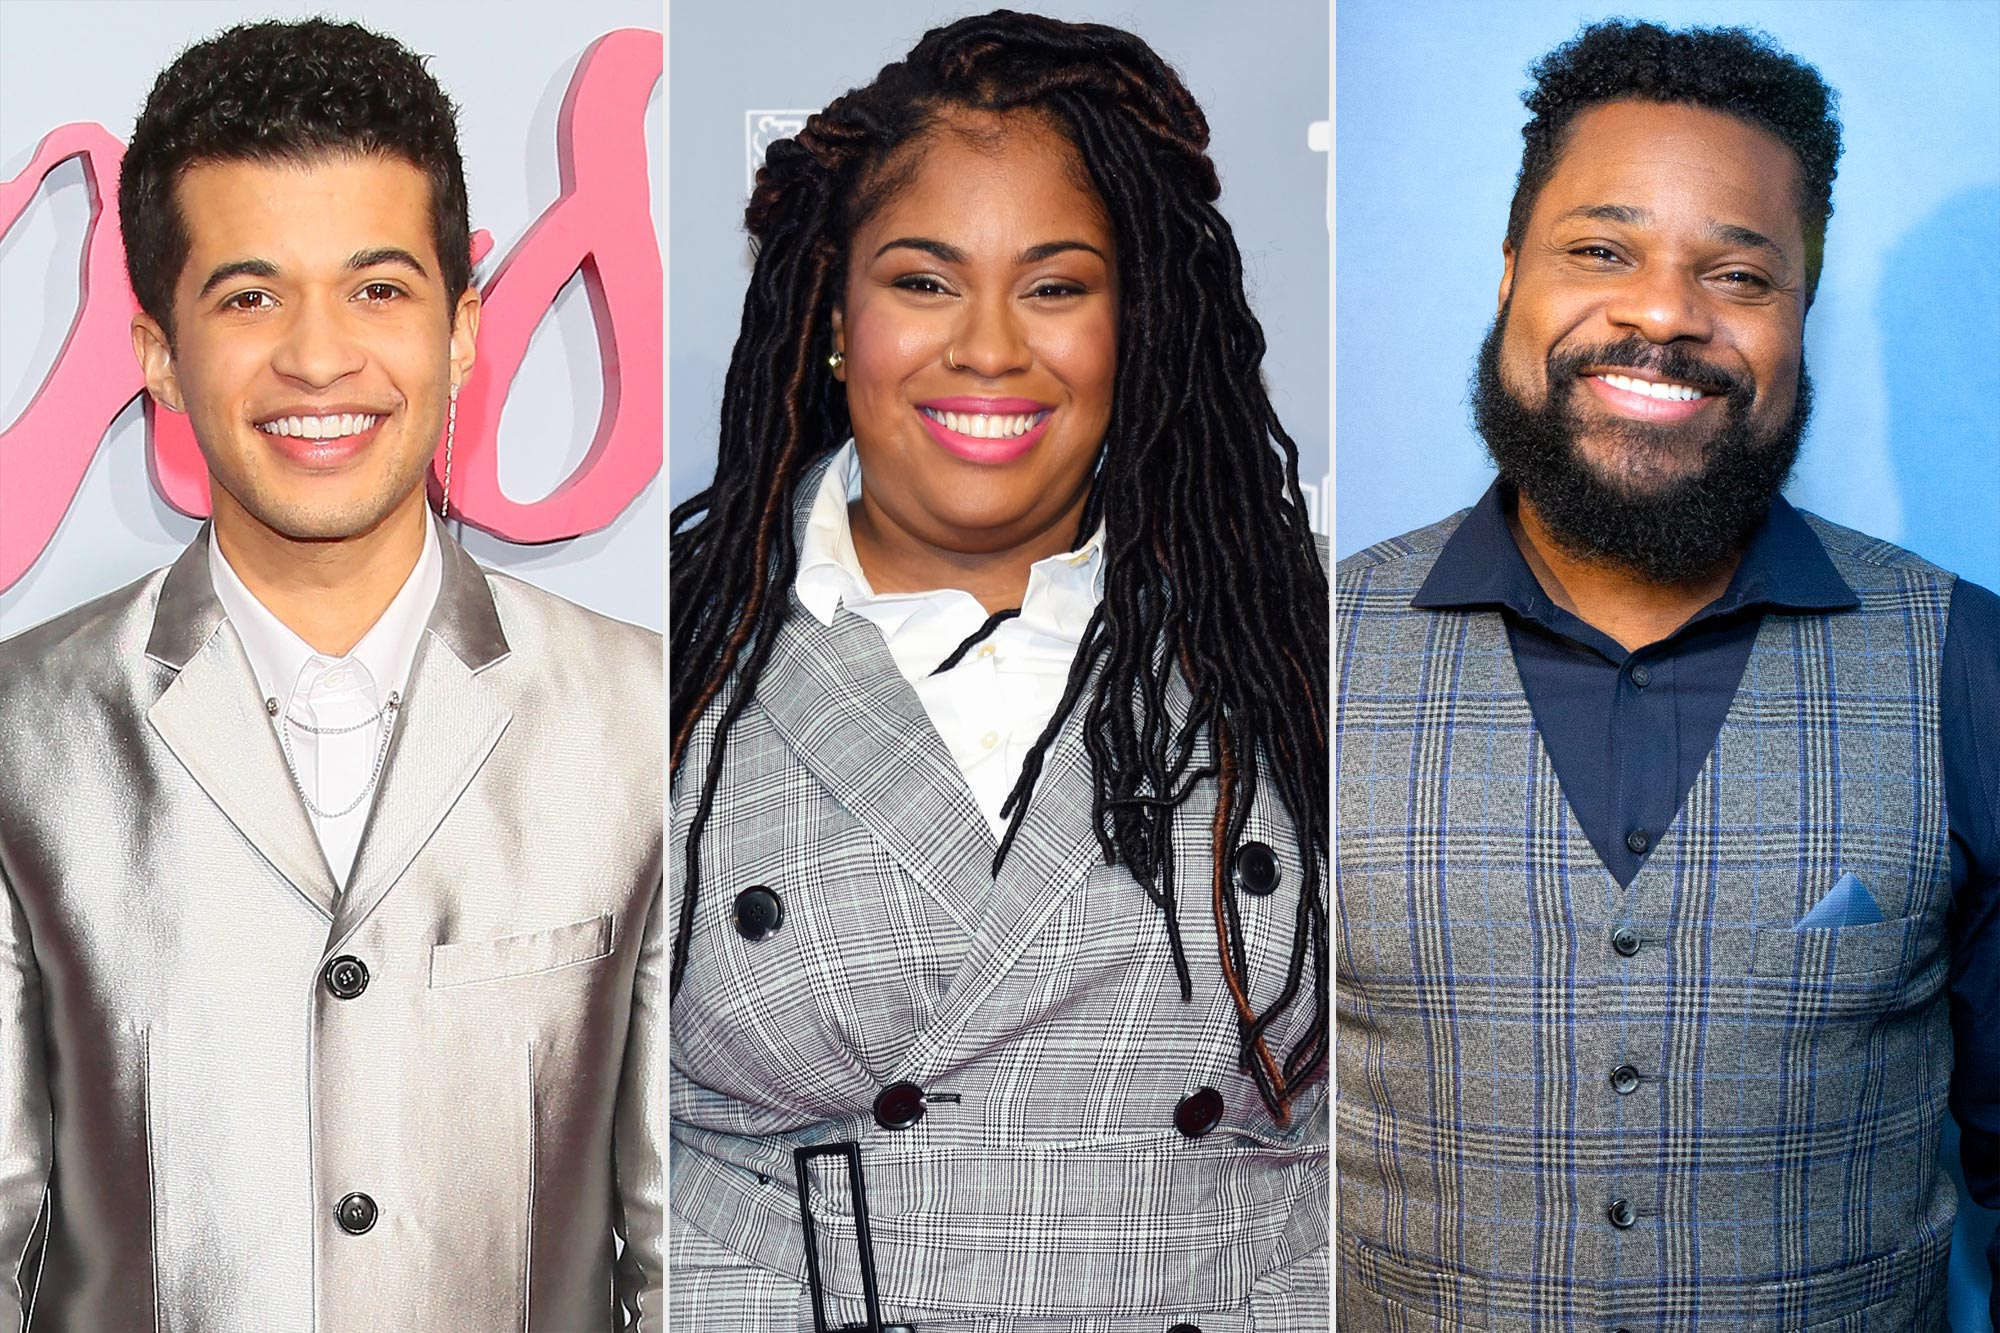 Jordan Fisher, Angie Thomas, and Malcolm-Jamal Warner